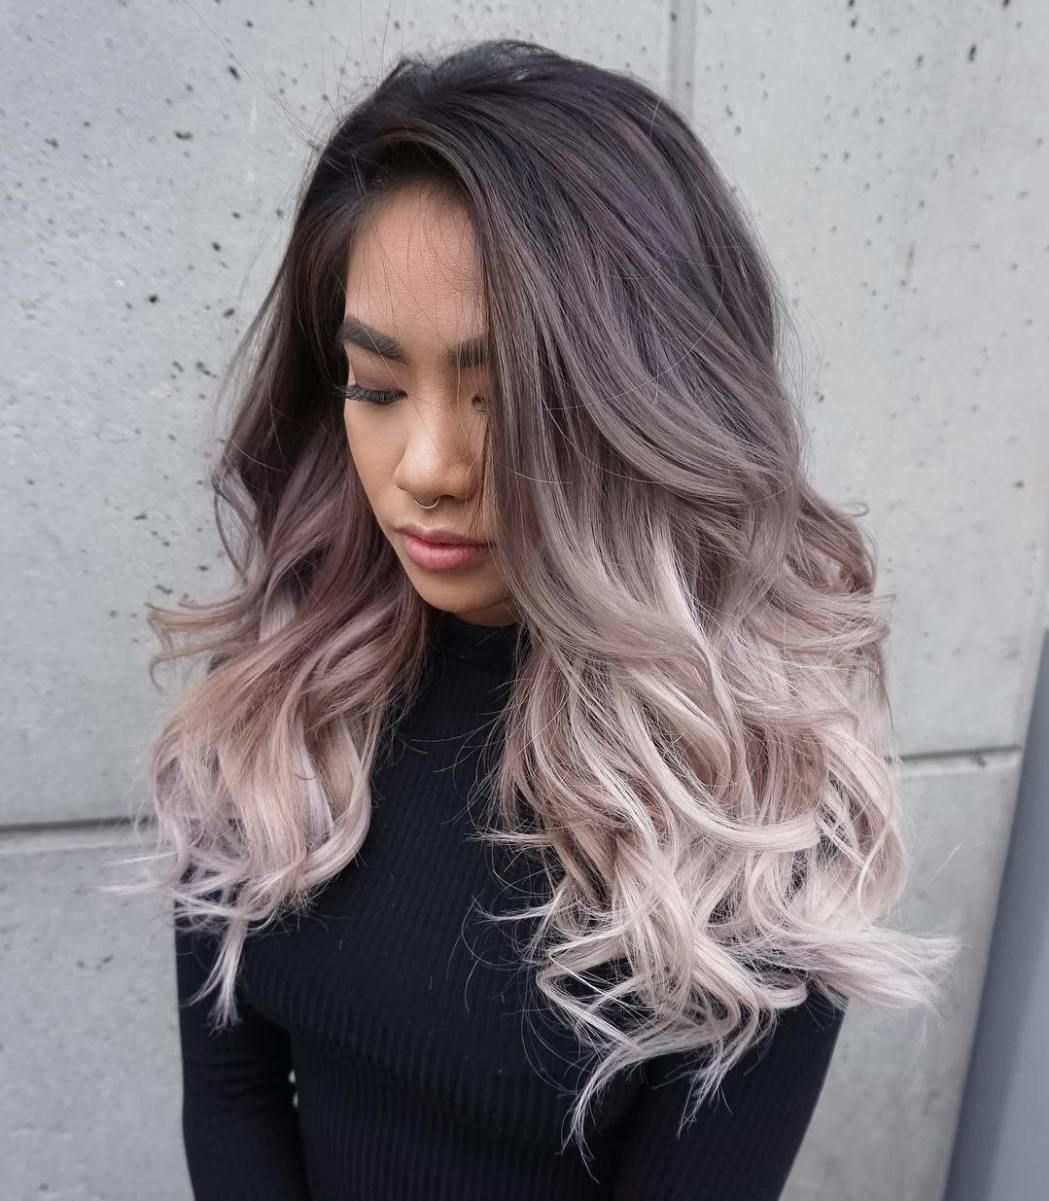 30 Modern Asian Hairstyles For Women And Girls Hair Styles Ombre Hair Blonde Ash Blonde Ombre Hair